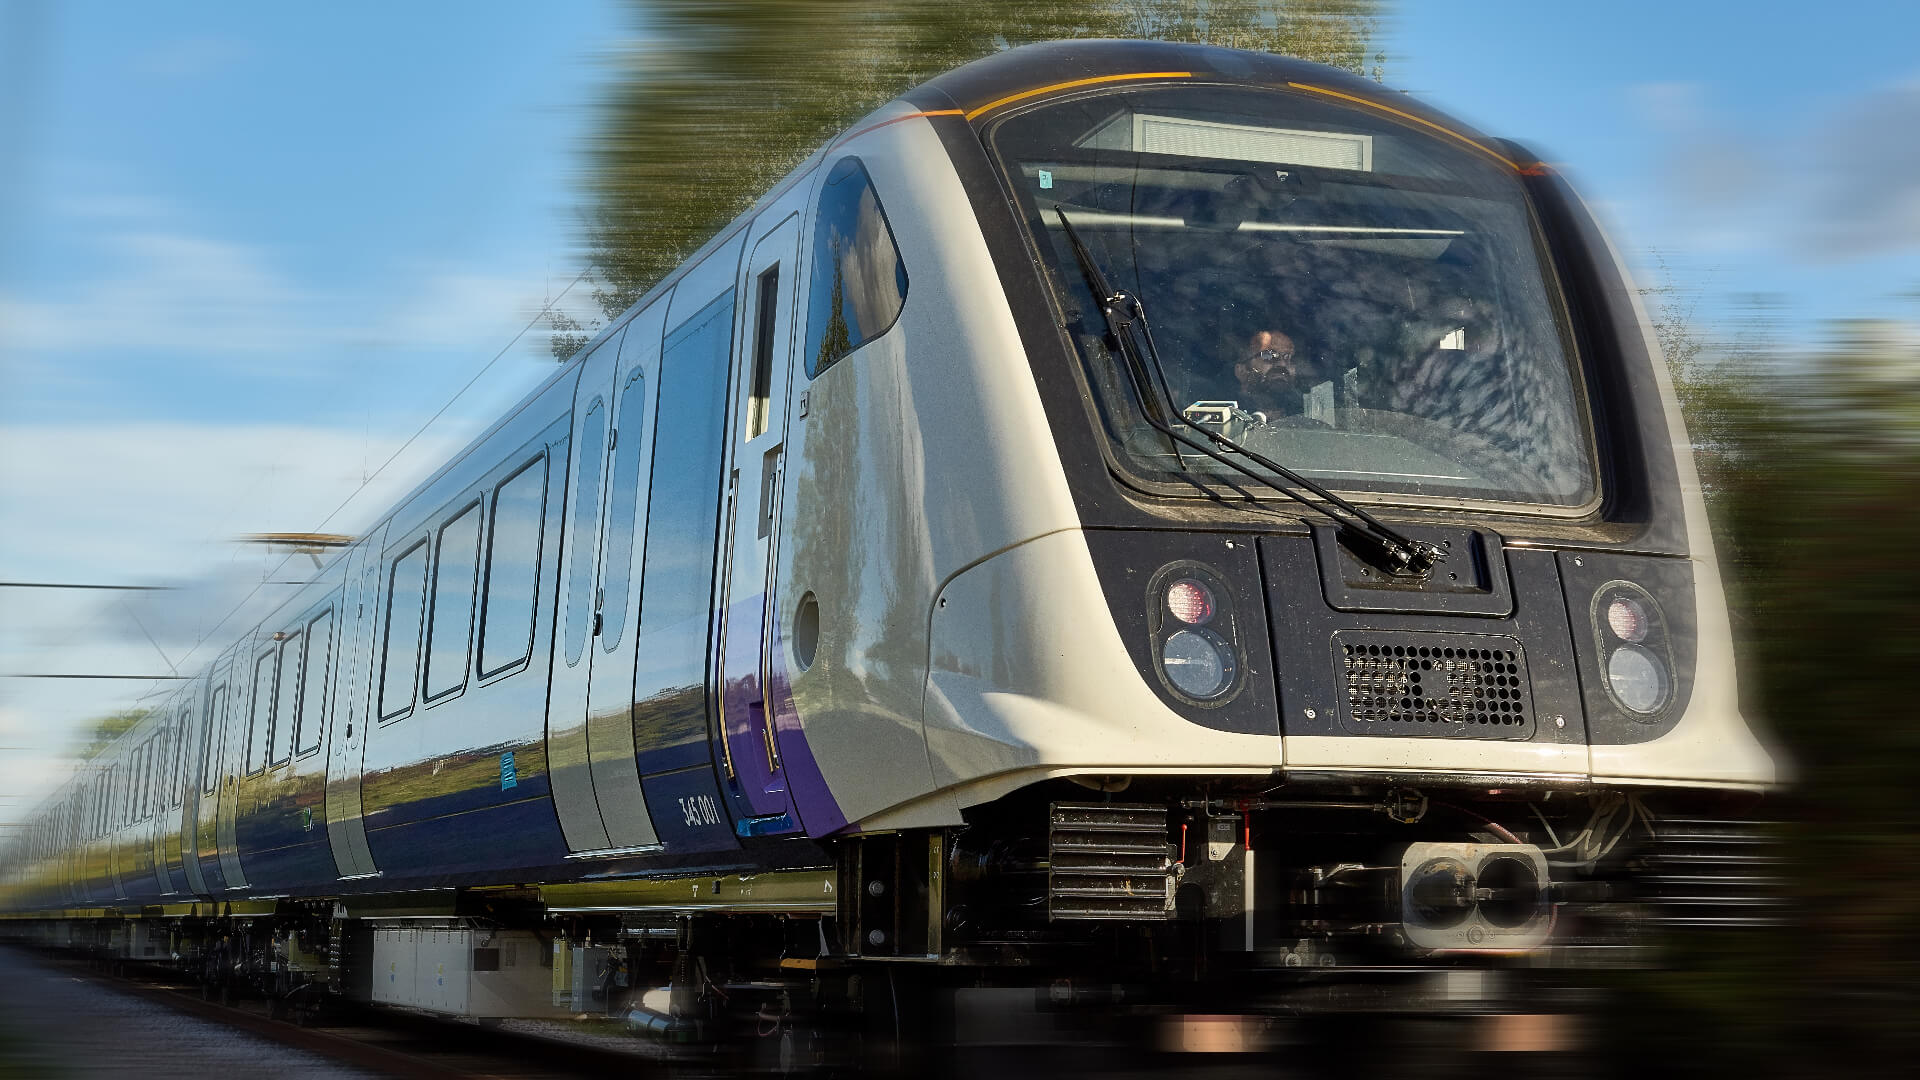 London Crossrail Meldeleuchte Warntongeber TSL